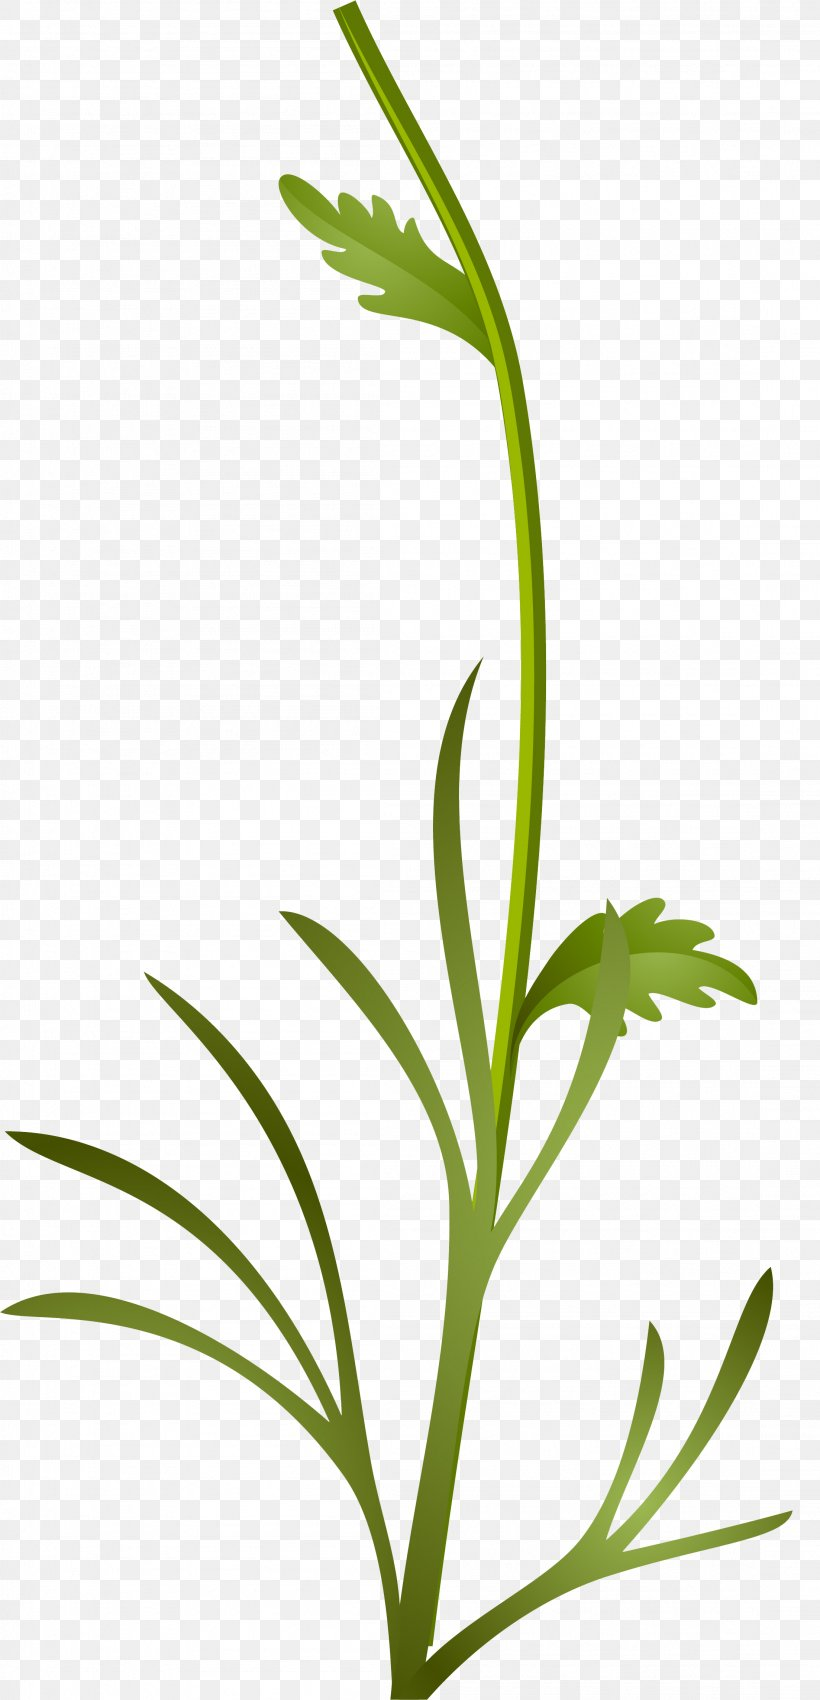 Grasses Sweet Grass Plant Stem Leaf, PNG, 2206x4576px, Grasses, Branch, Commodity, Family, Flora Download Free